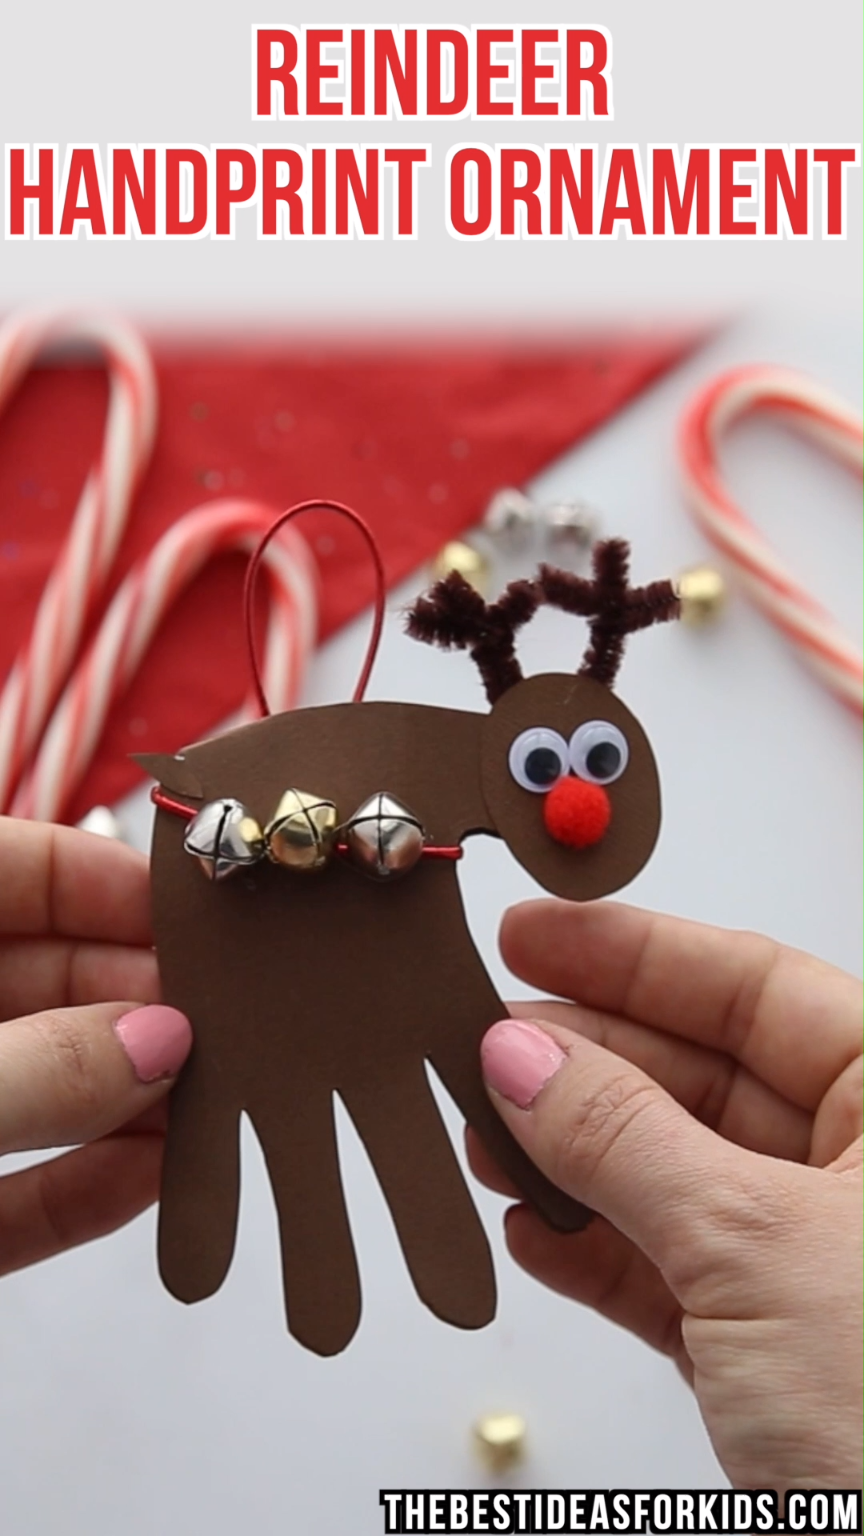 Christmas Crafts For Kids Reindeer Handprint Ornament This Is The Perfect Christmas Gift Or C Preschool Christmas Christmas Crafts For Kids Christmas Crafts